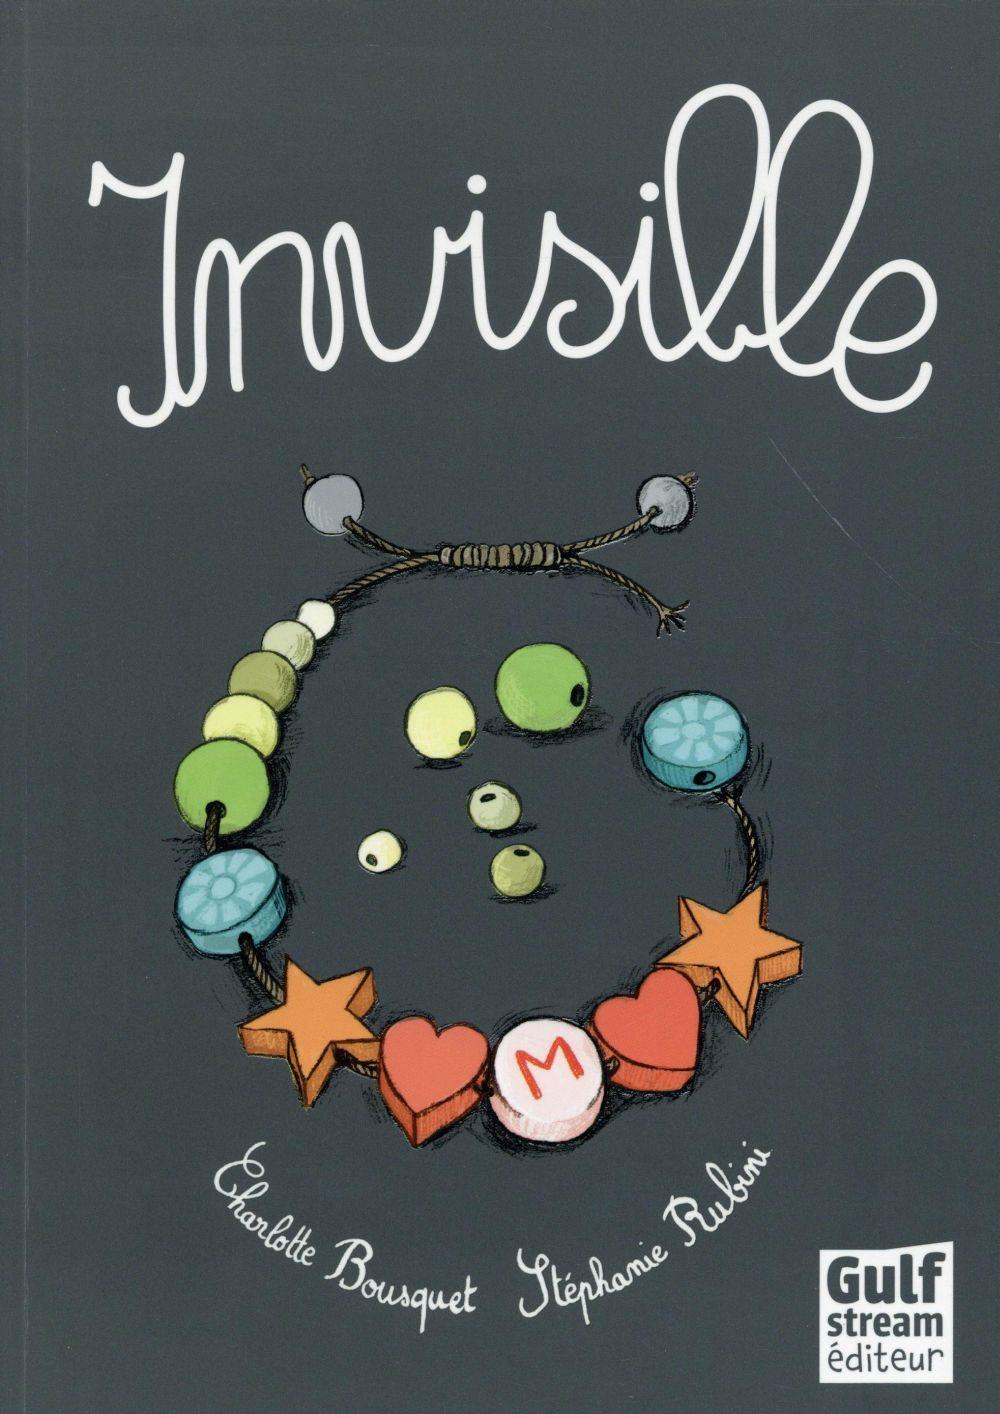 Invisible  - Charlotte Bousquet  - Stephanie Rubini